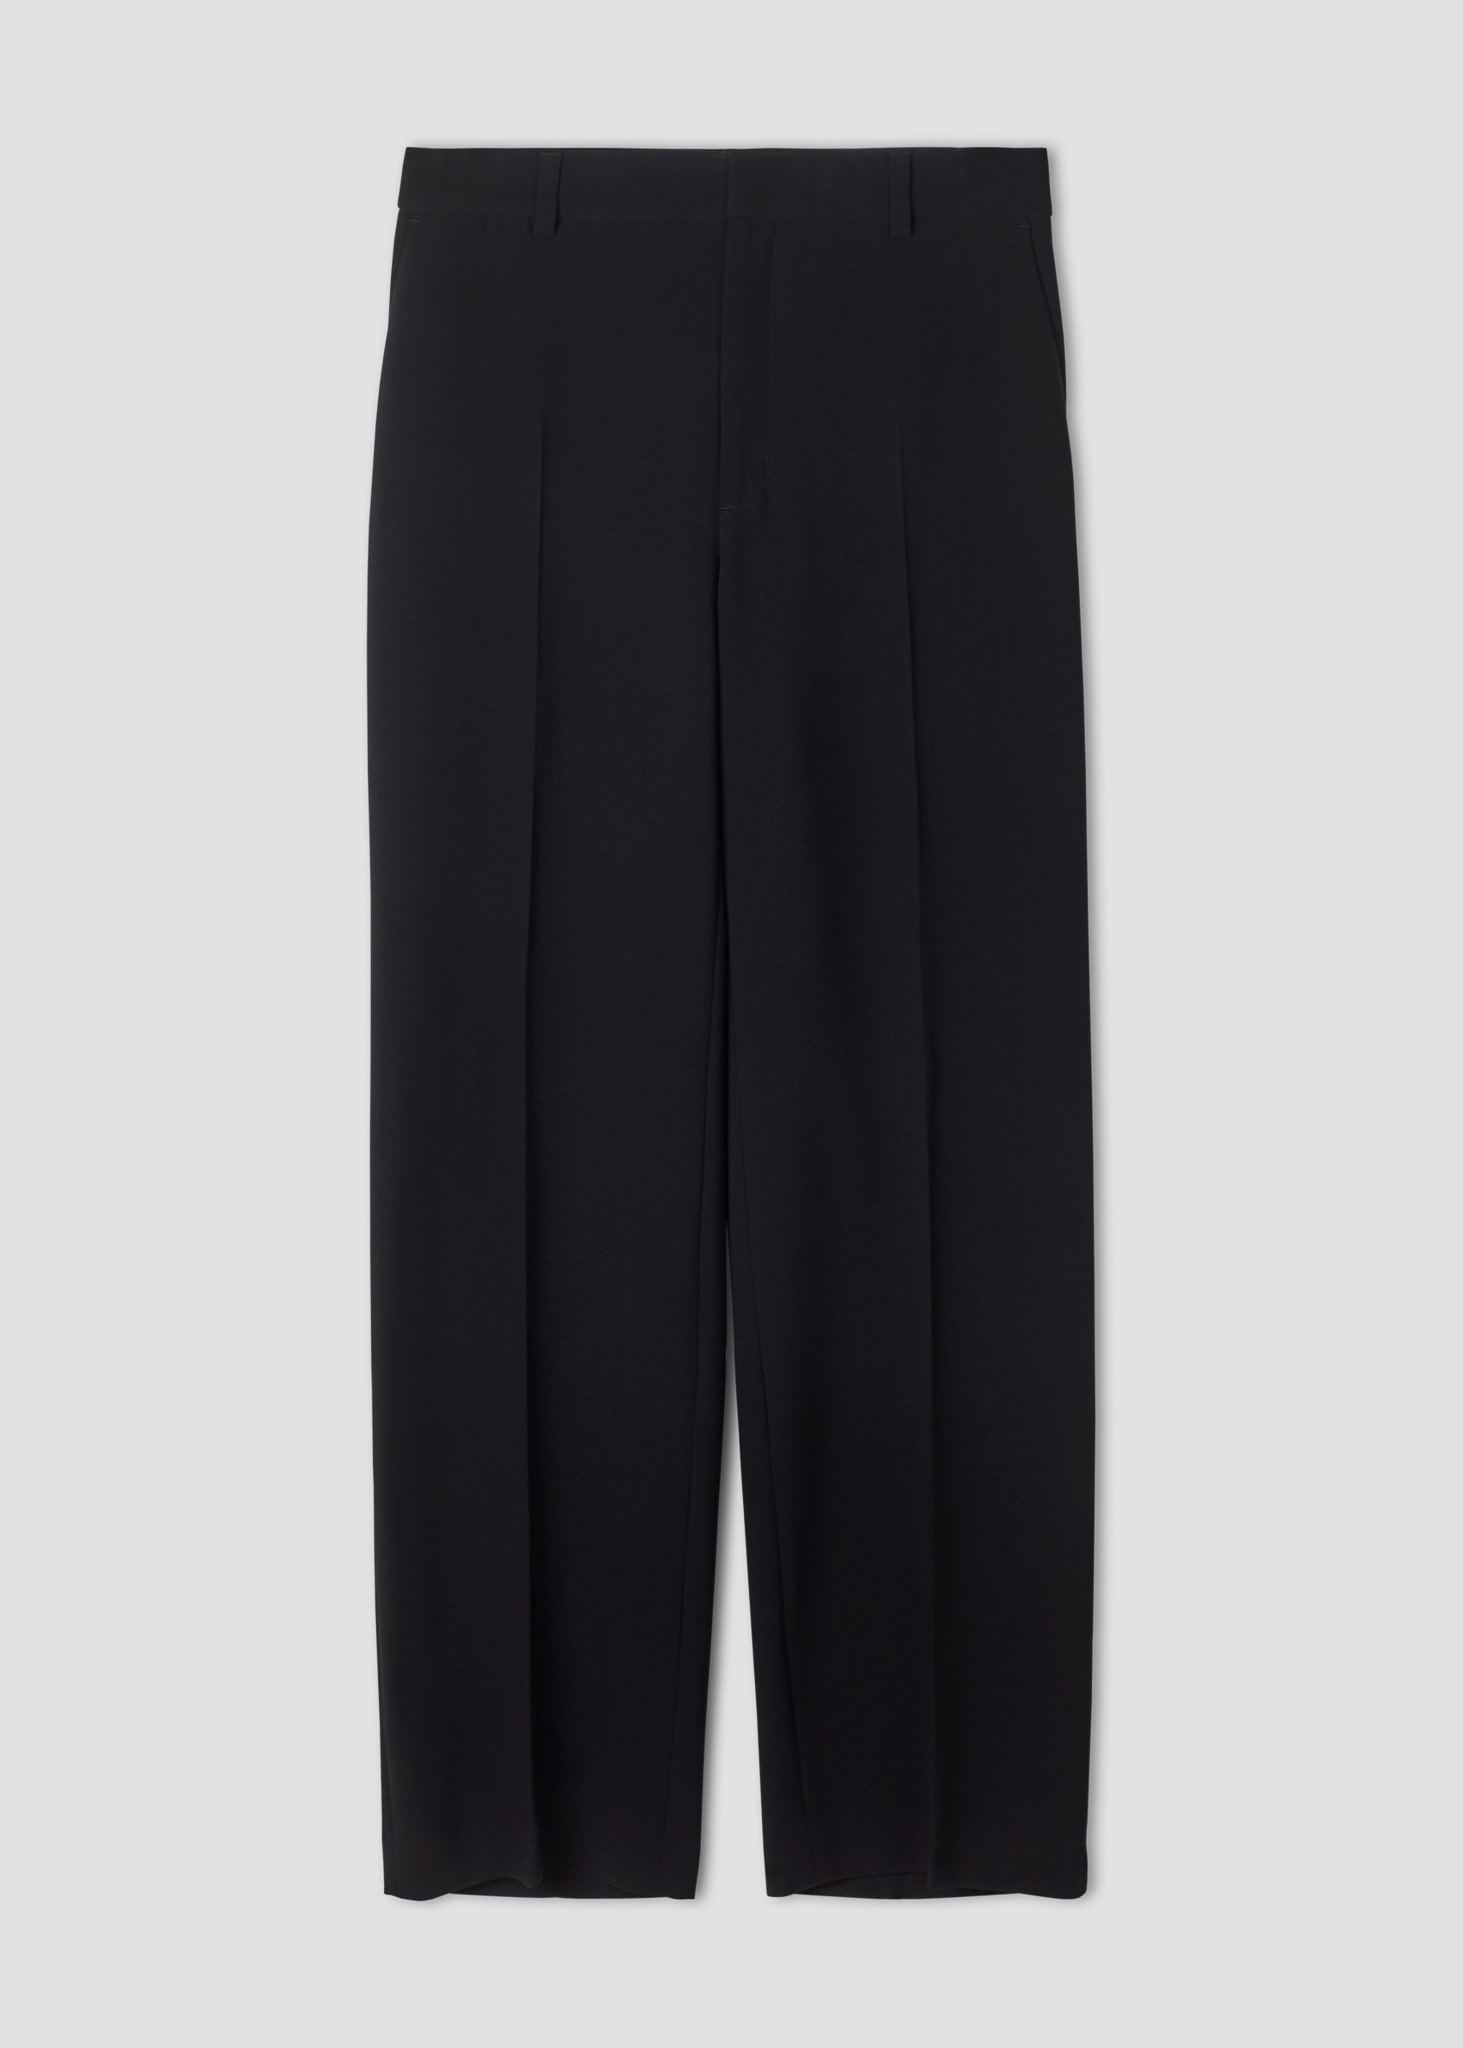 Filippa K Hutton pant